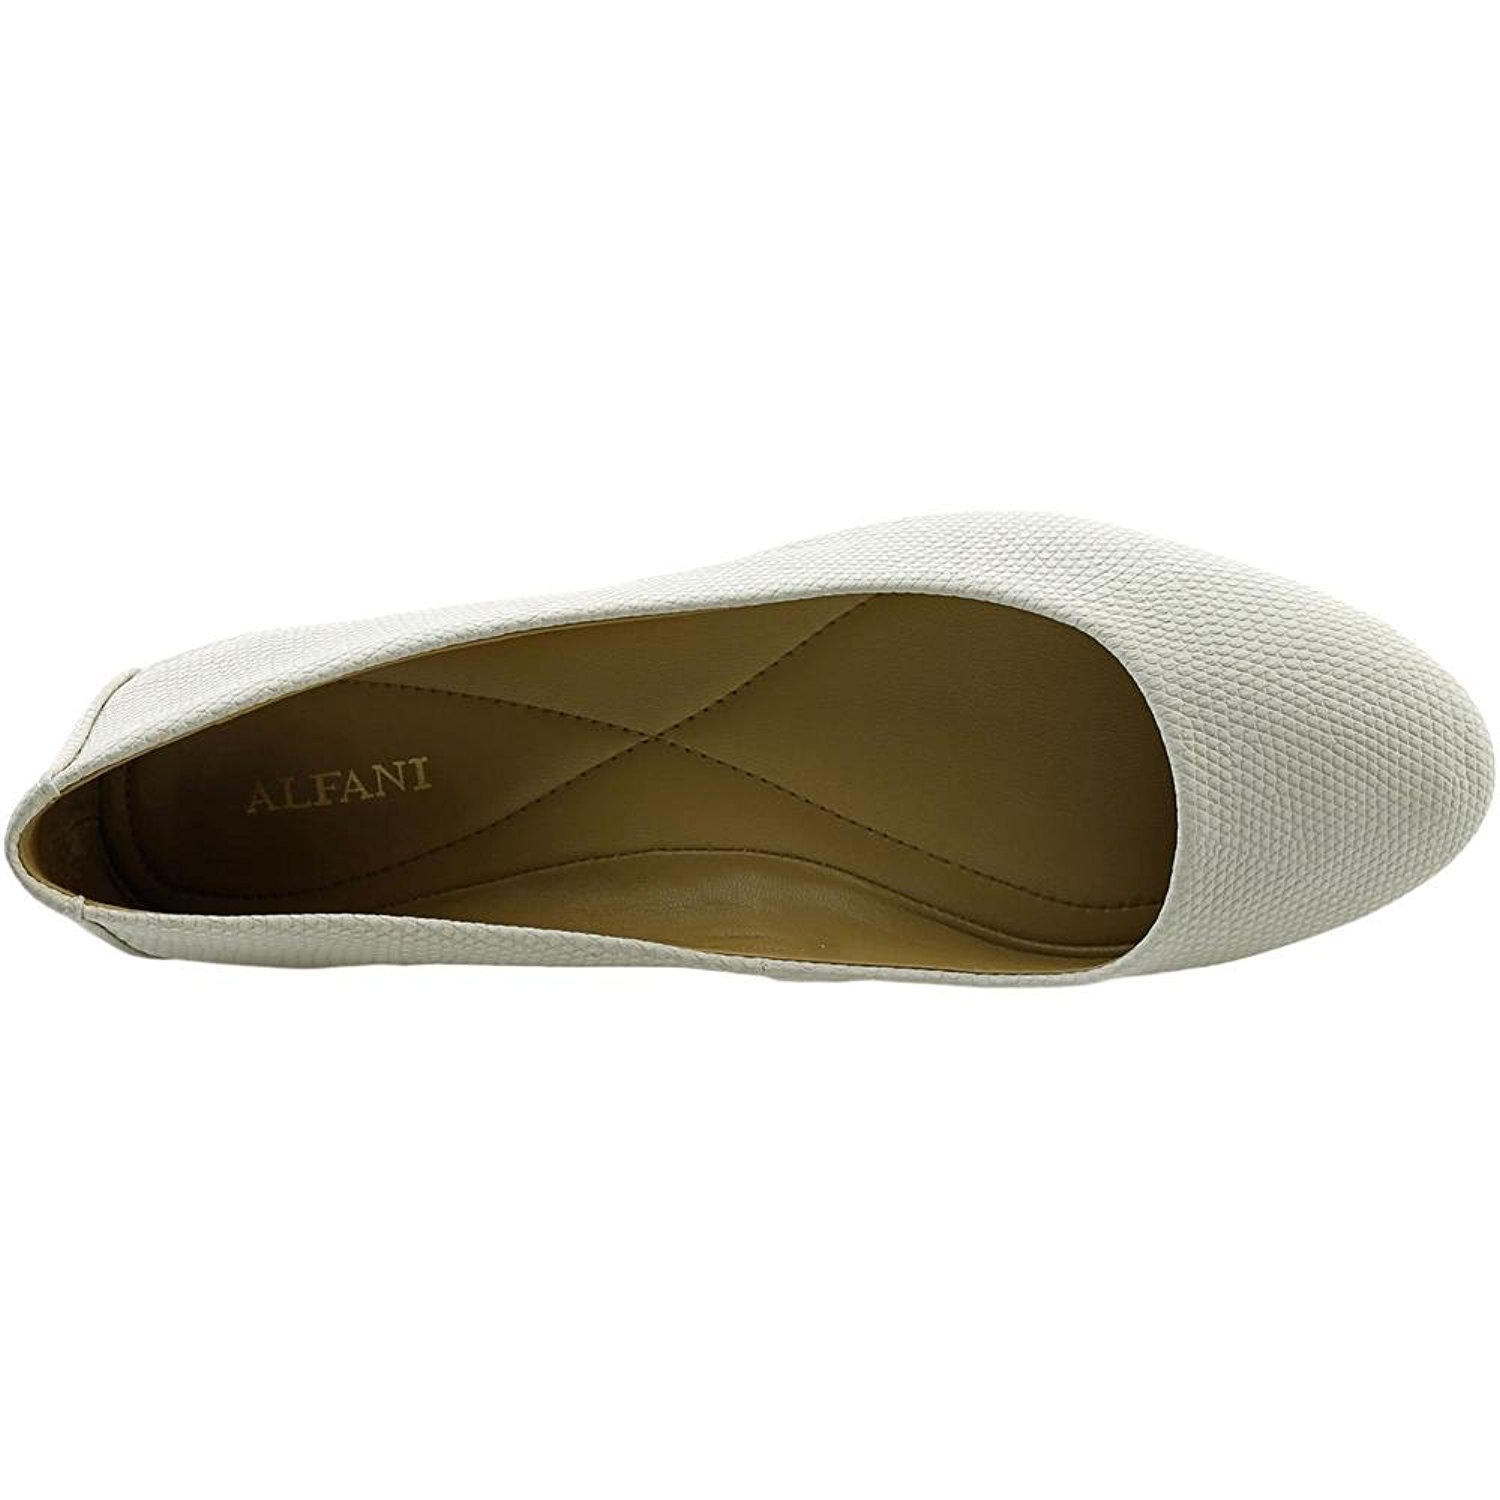 Mens Slip On Ballet Type Shoe